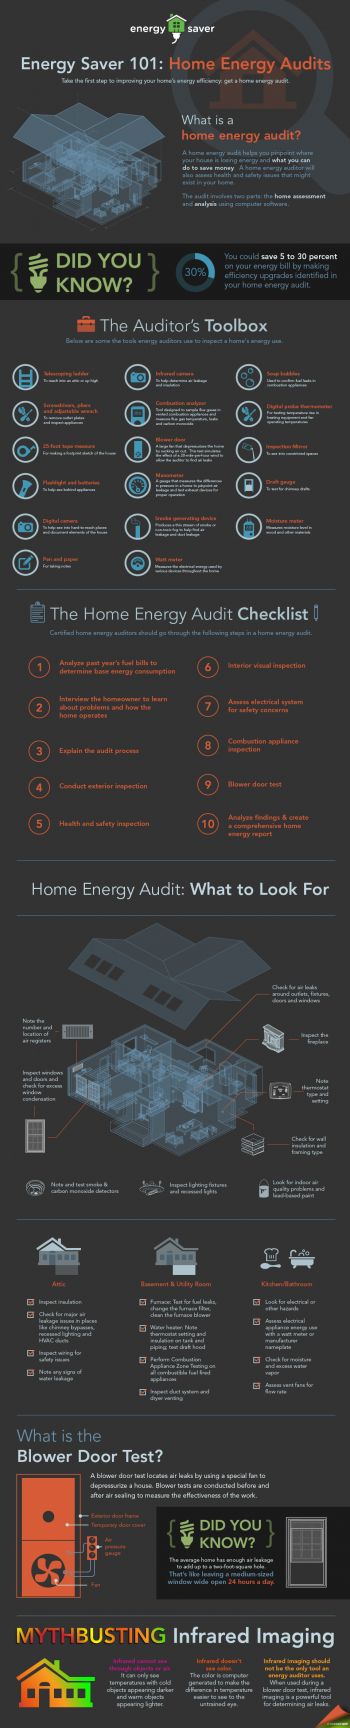 New Energy Saver 101 infographic breaks down a home energy audit, explaining what energy auditors look for and the special tools they use to determine where a home is wasting energy. | Infographic by Sarah Gerrity, Energy Department.